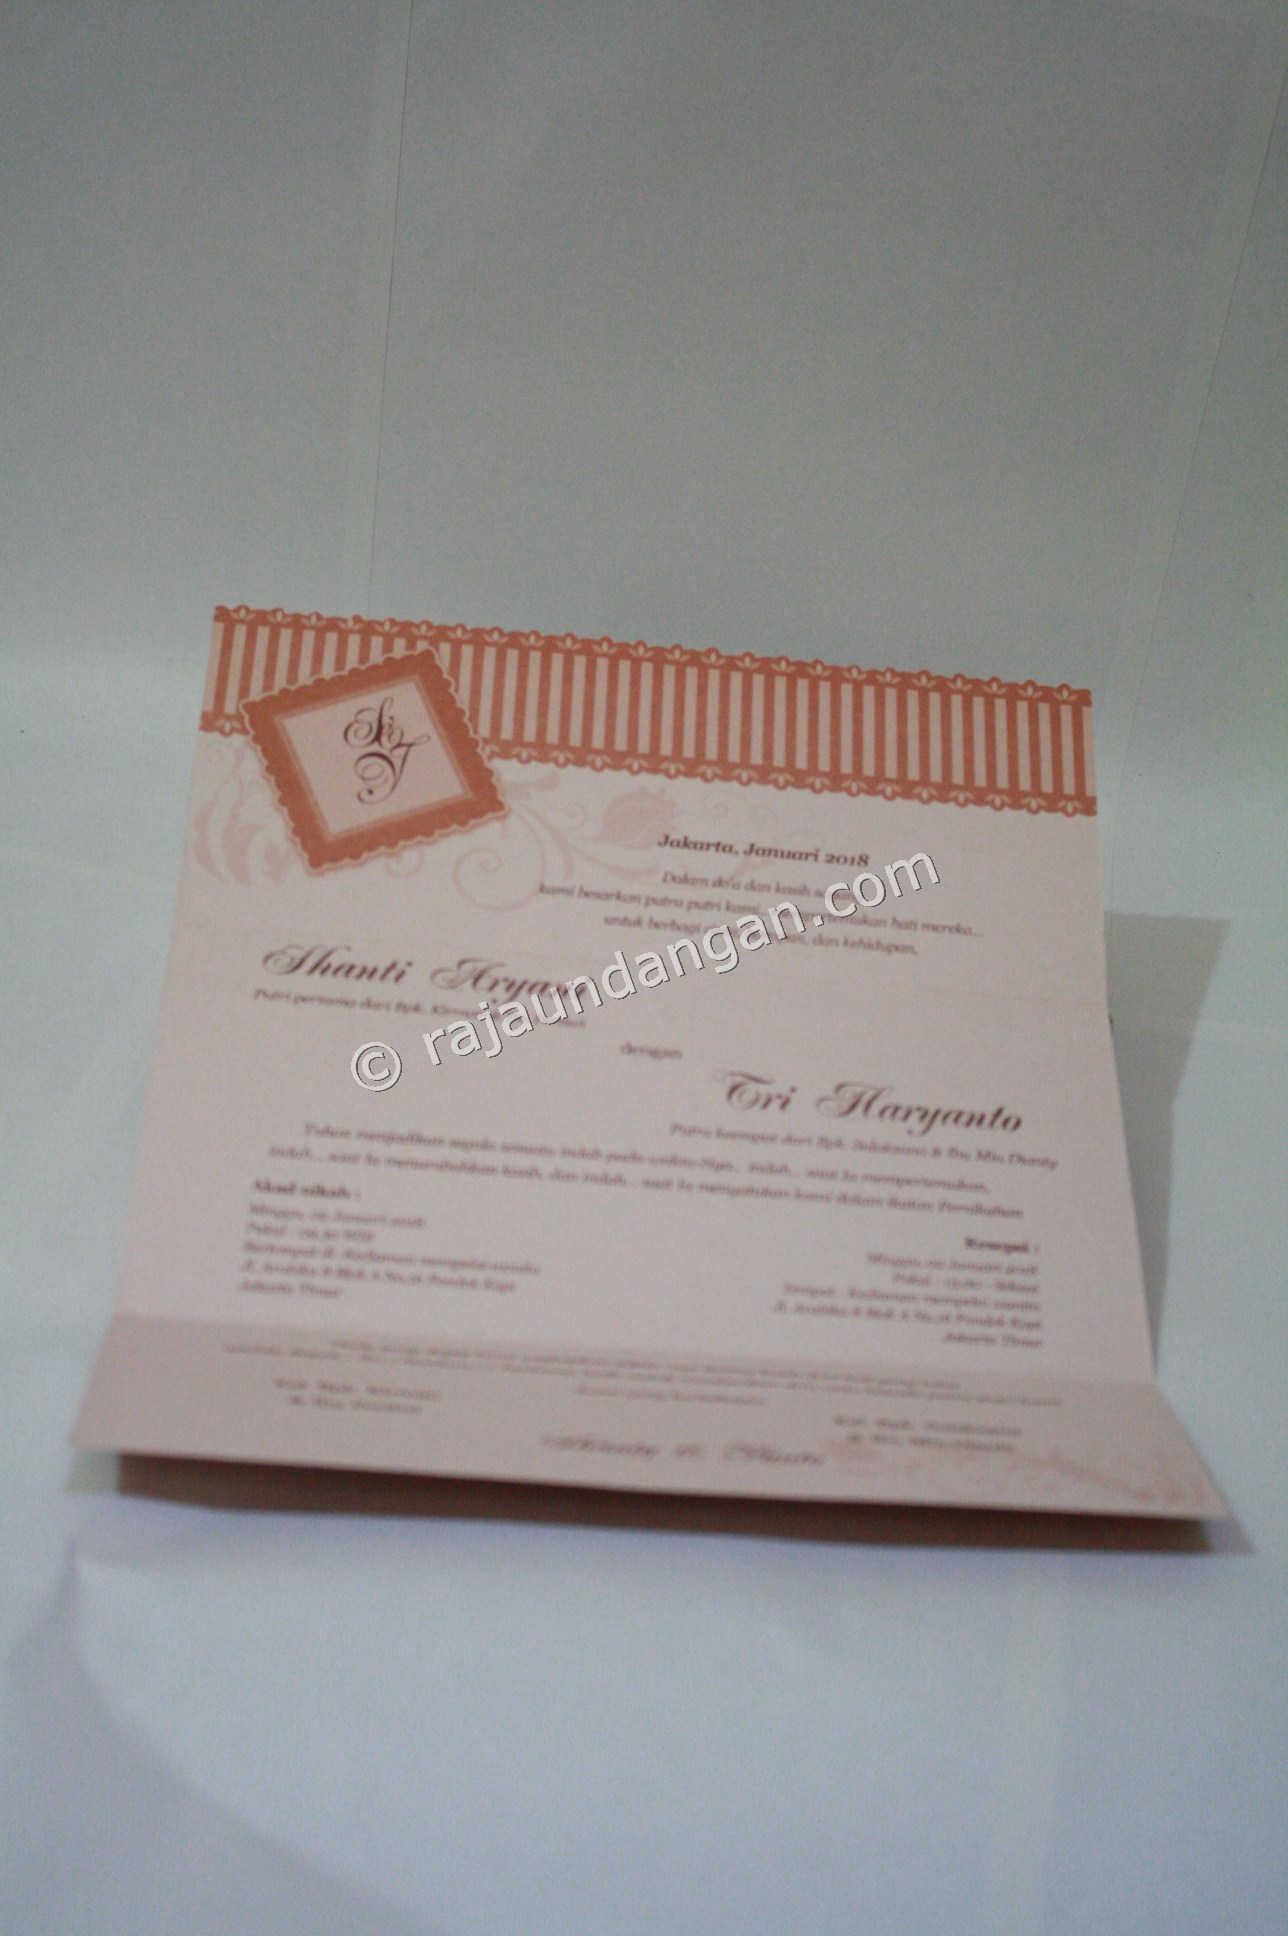 Undangan Pernikahan Softcover Shanti dan Haryanto 3 - Percetakan Wedding Invitations Simple dan Elegan di Putat Jaya